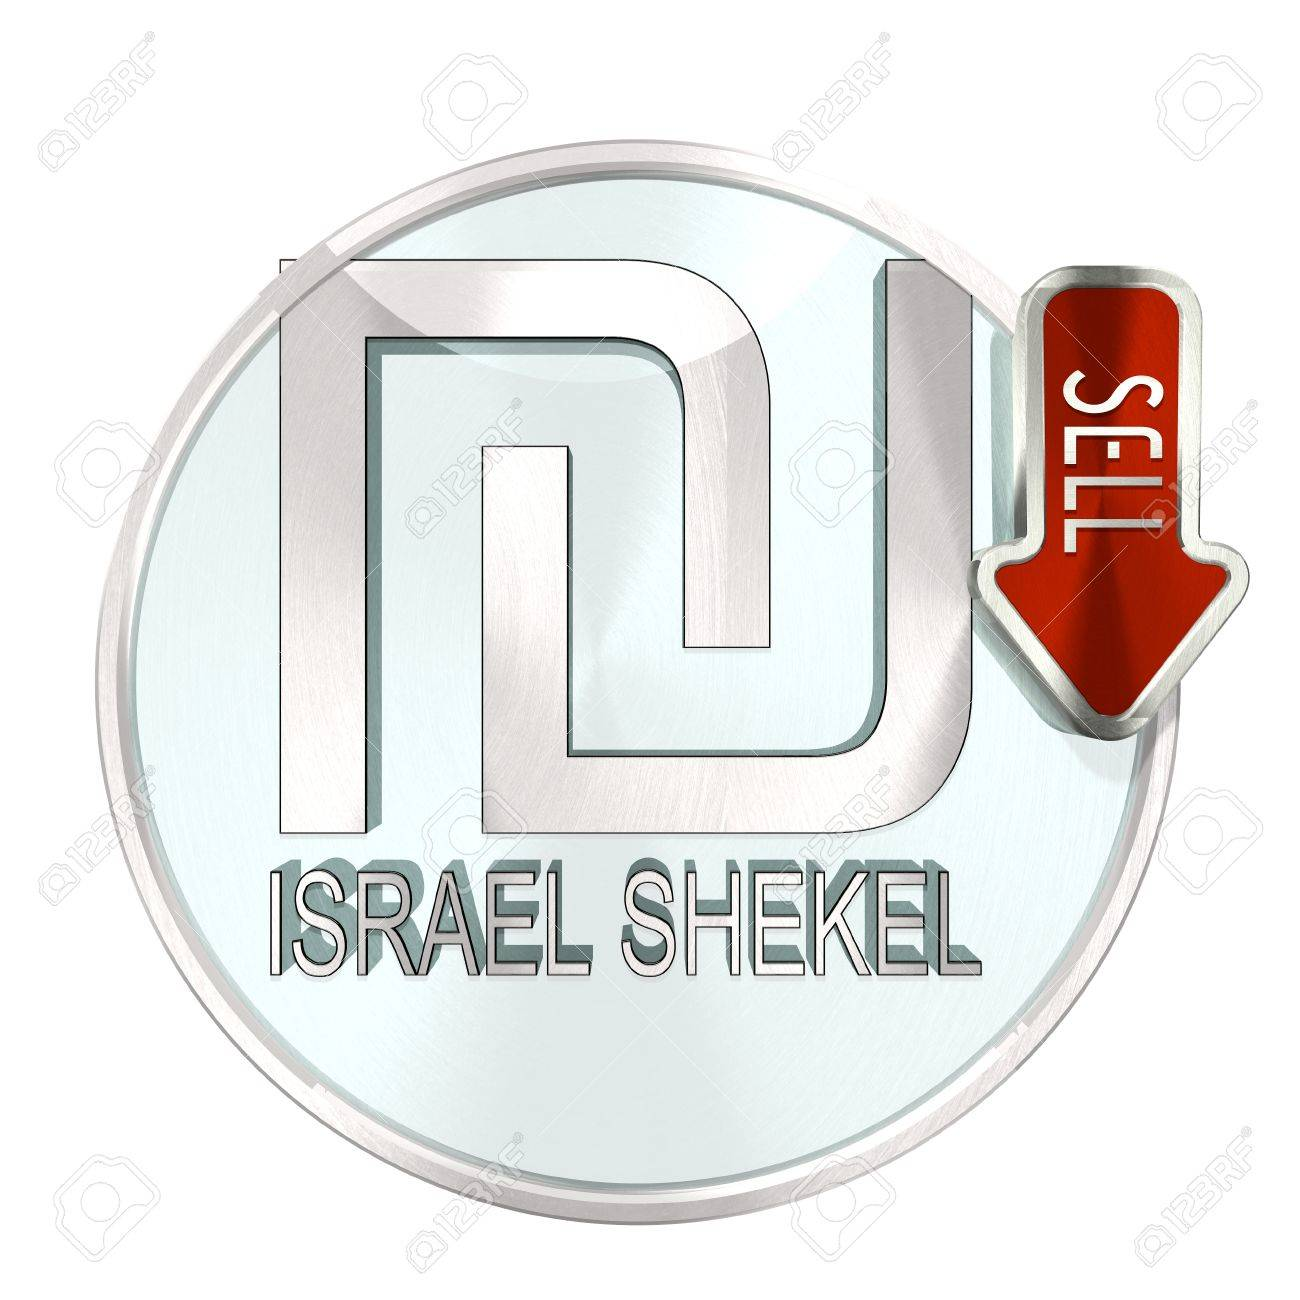 Round Stylish Israel Shekel Button With Currency Symbol And Down